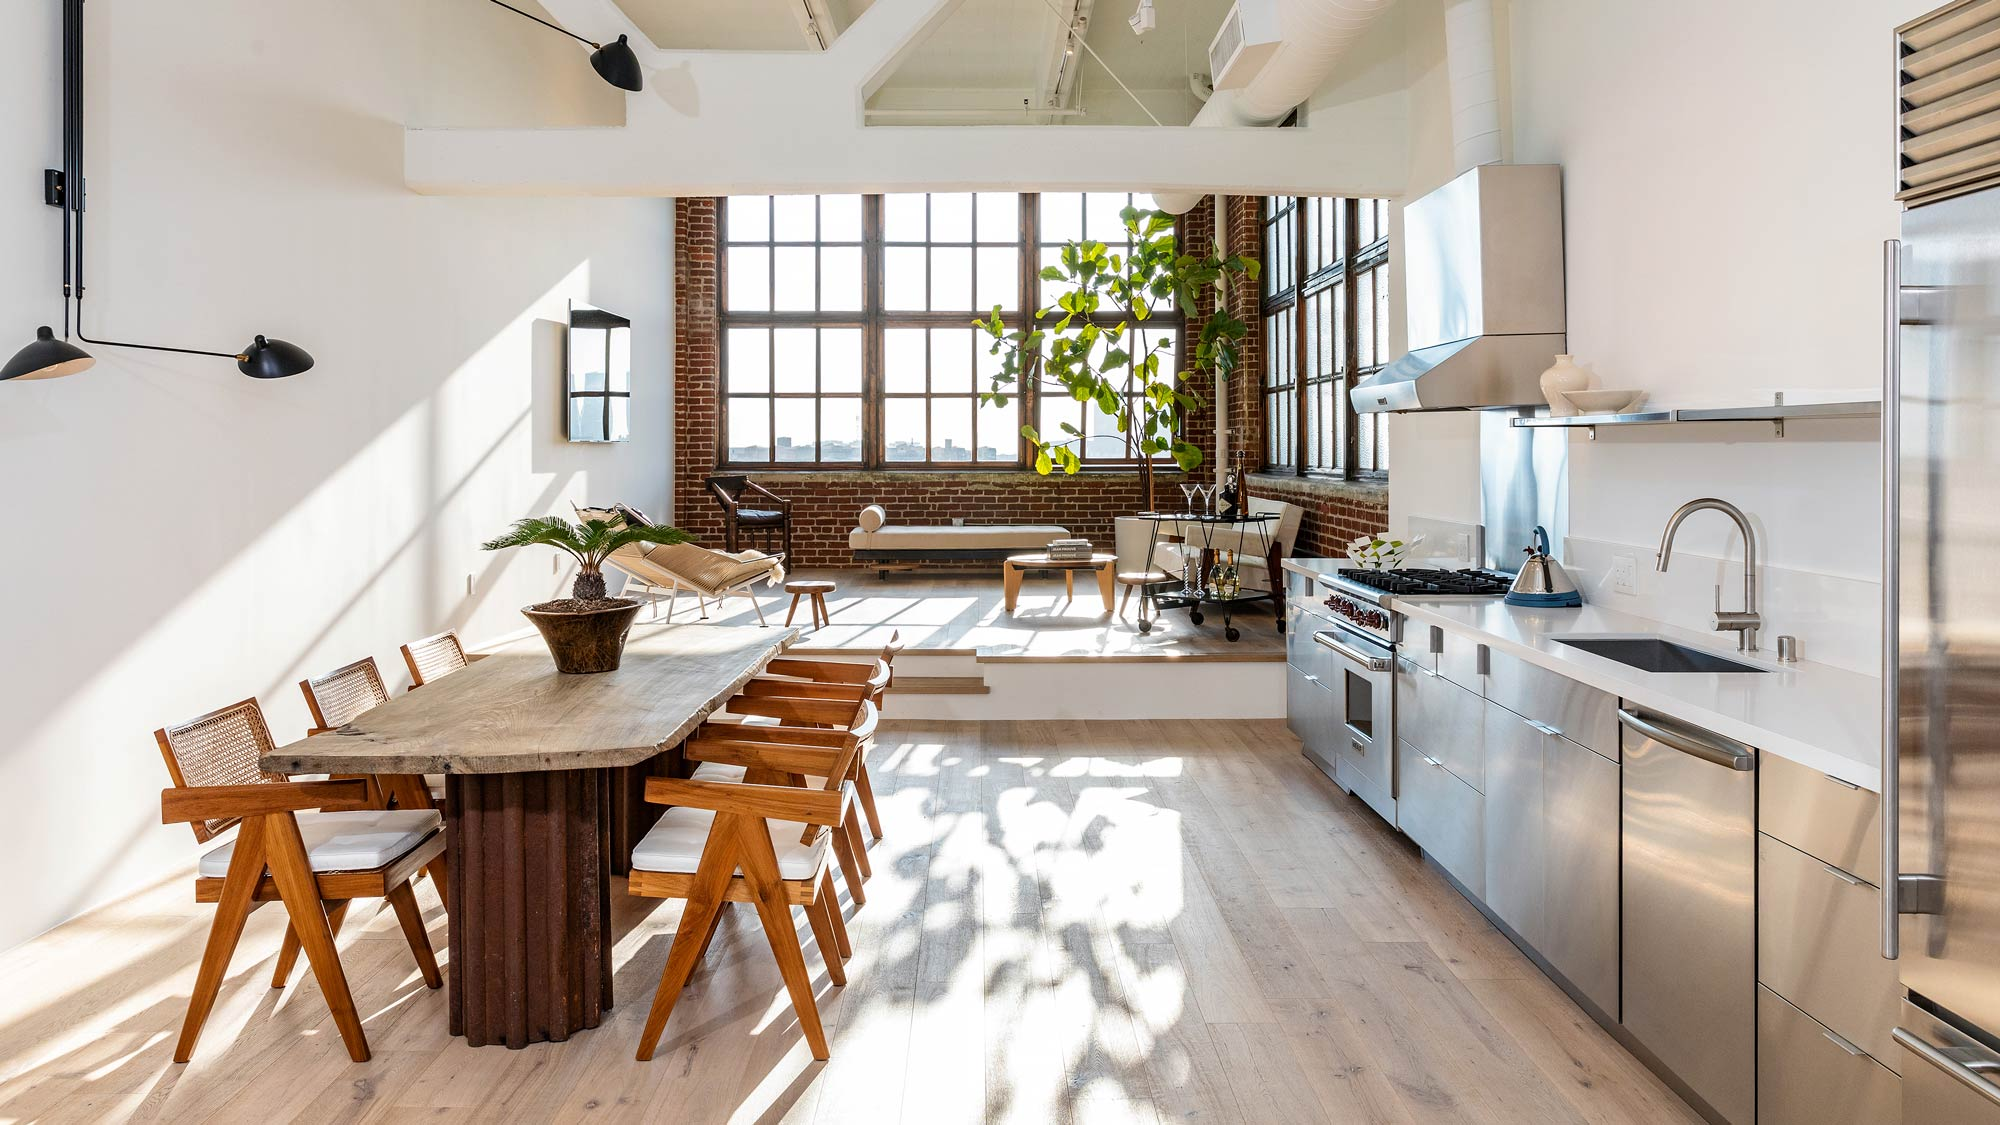 Interior design of a city loft